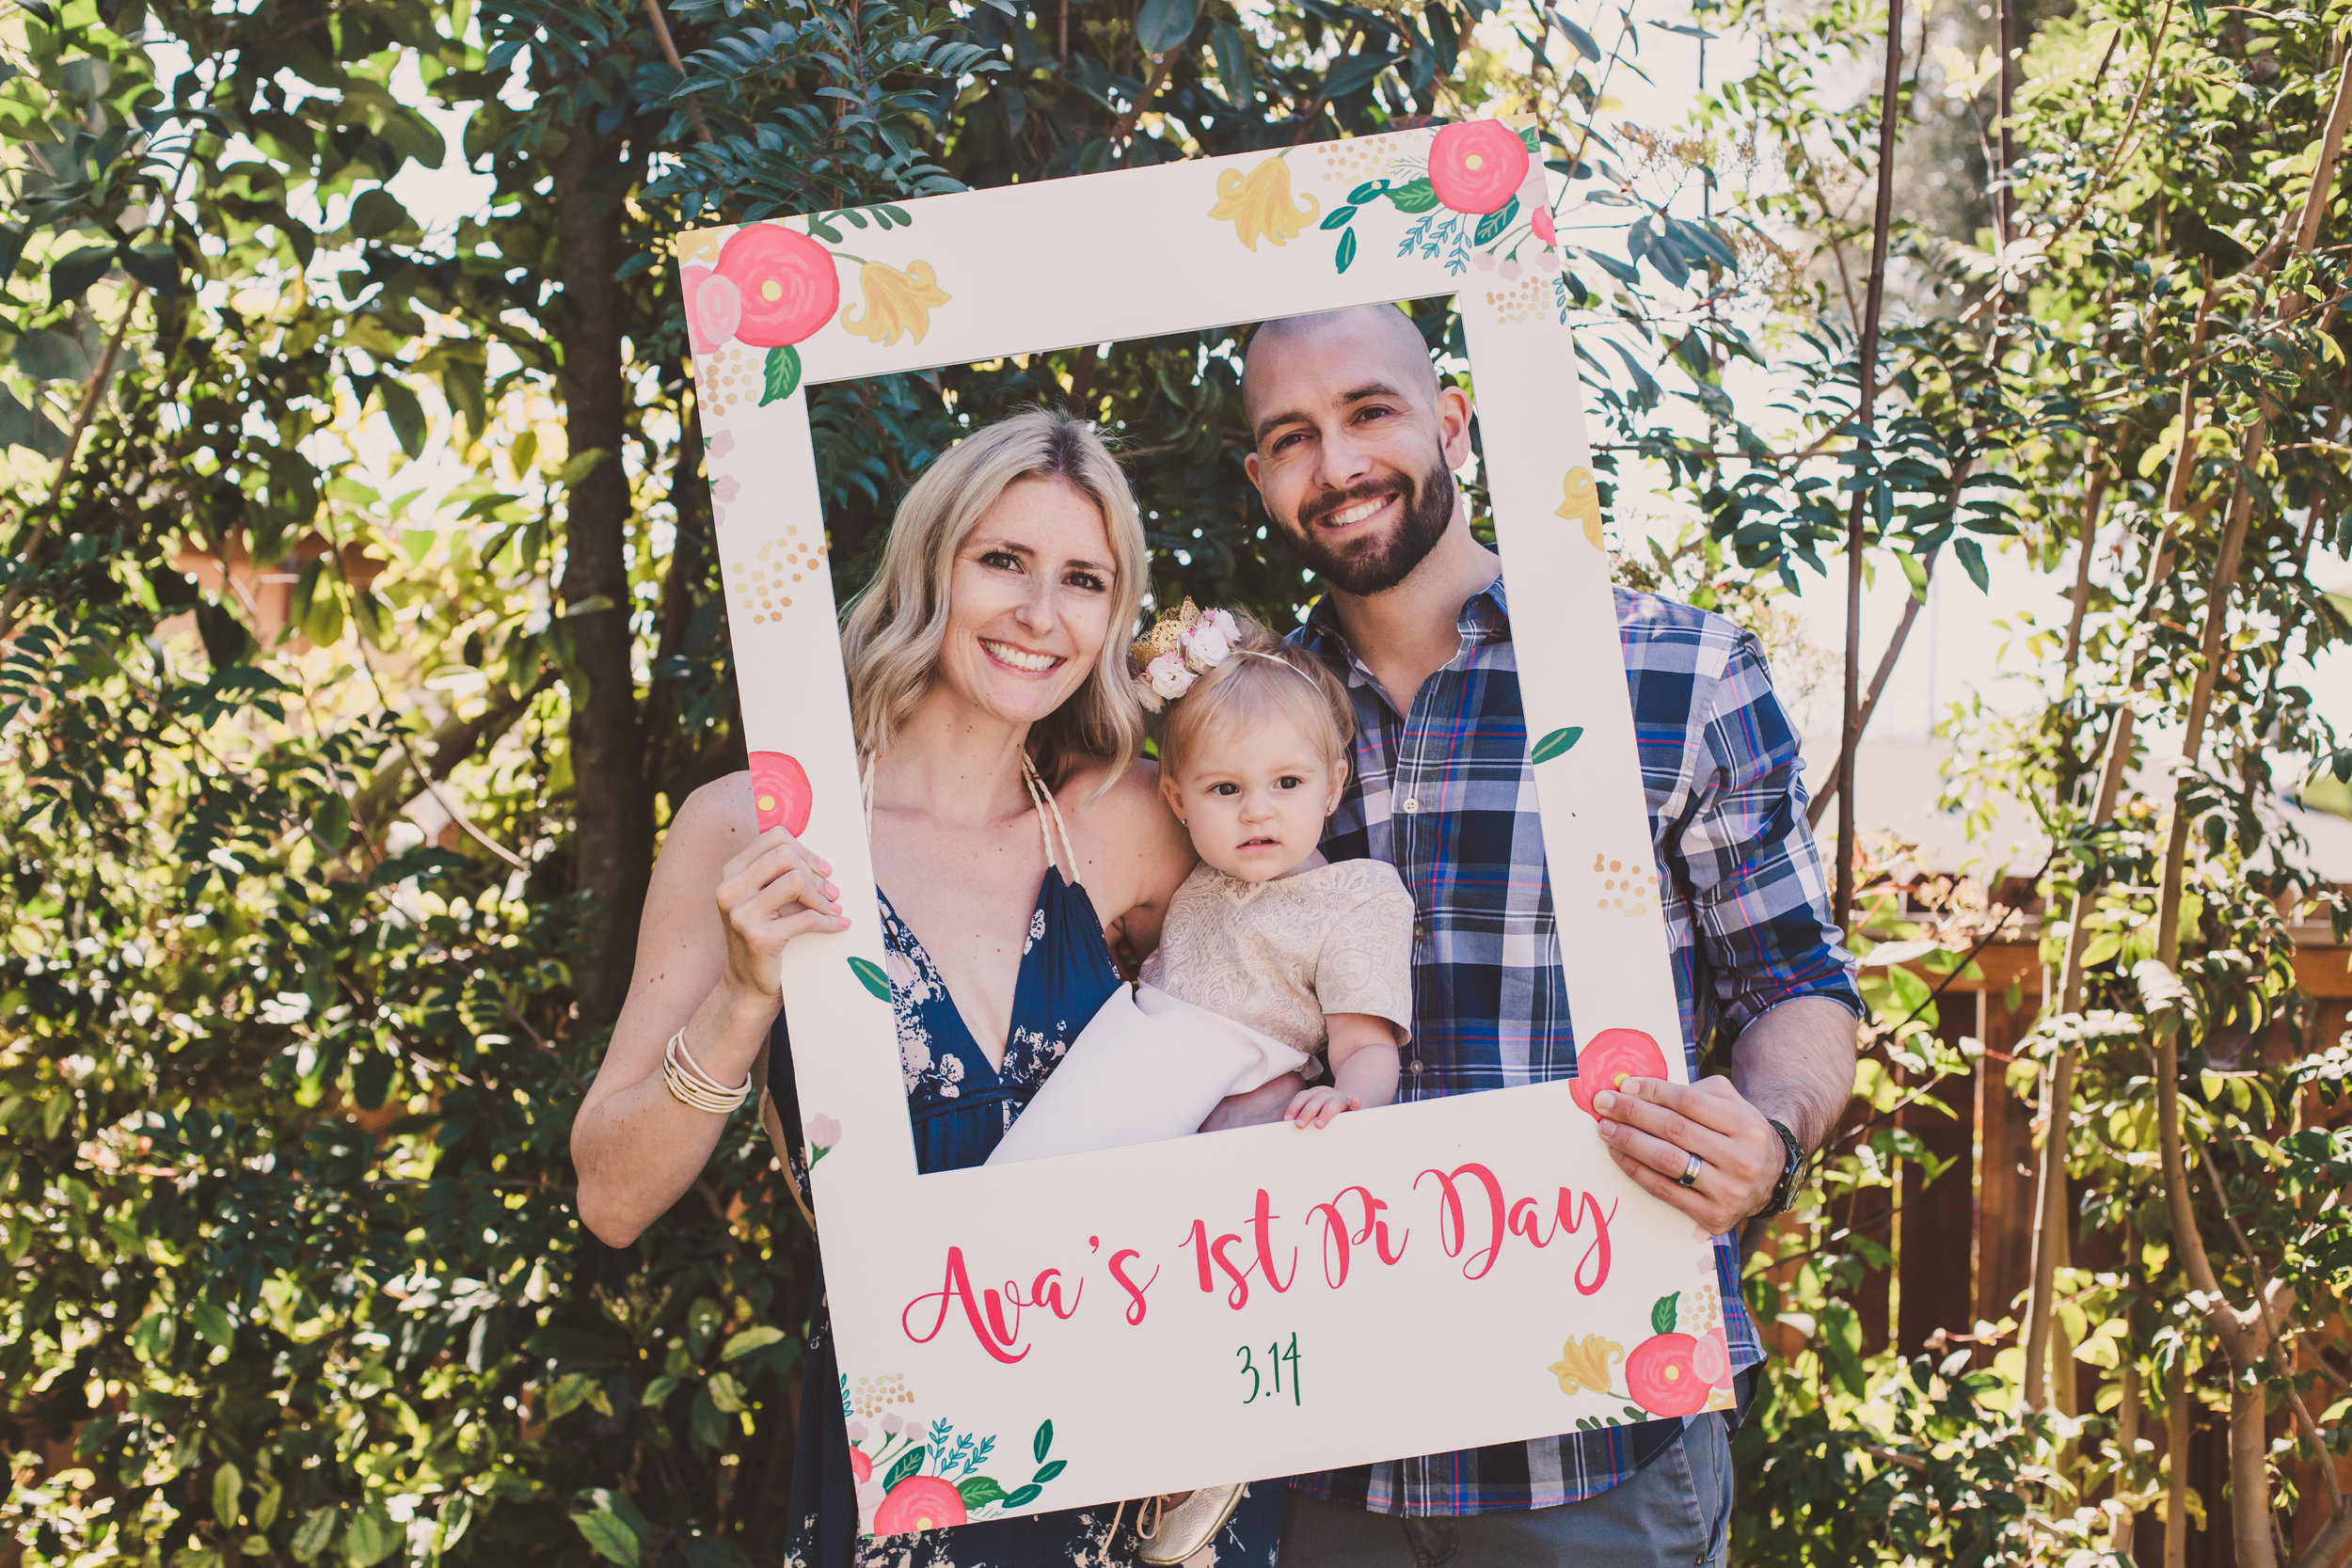 Party Photo Frames - Photobooth Props - A Vintage Chic Pi Day Themed 1st Birthday Party